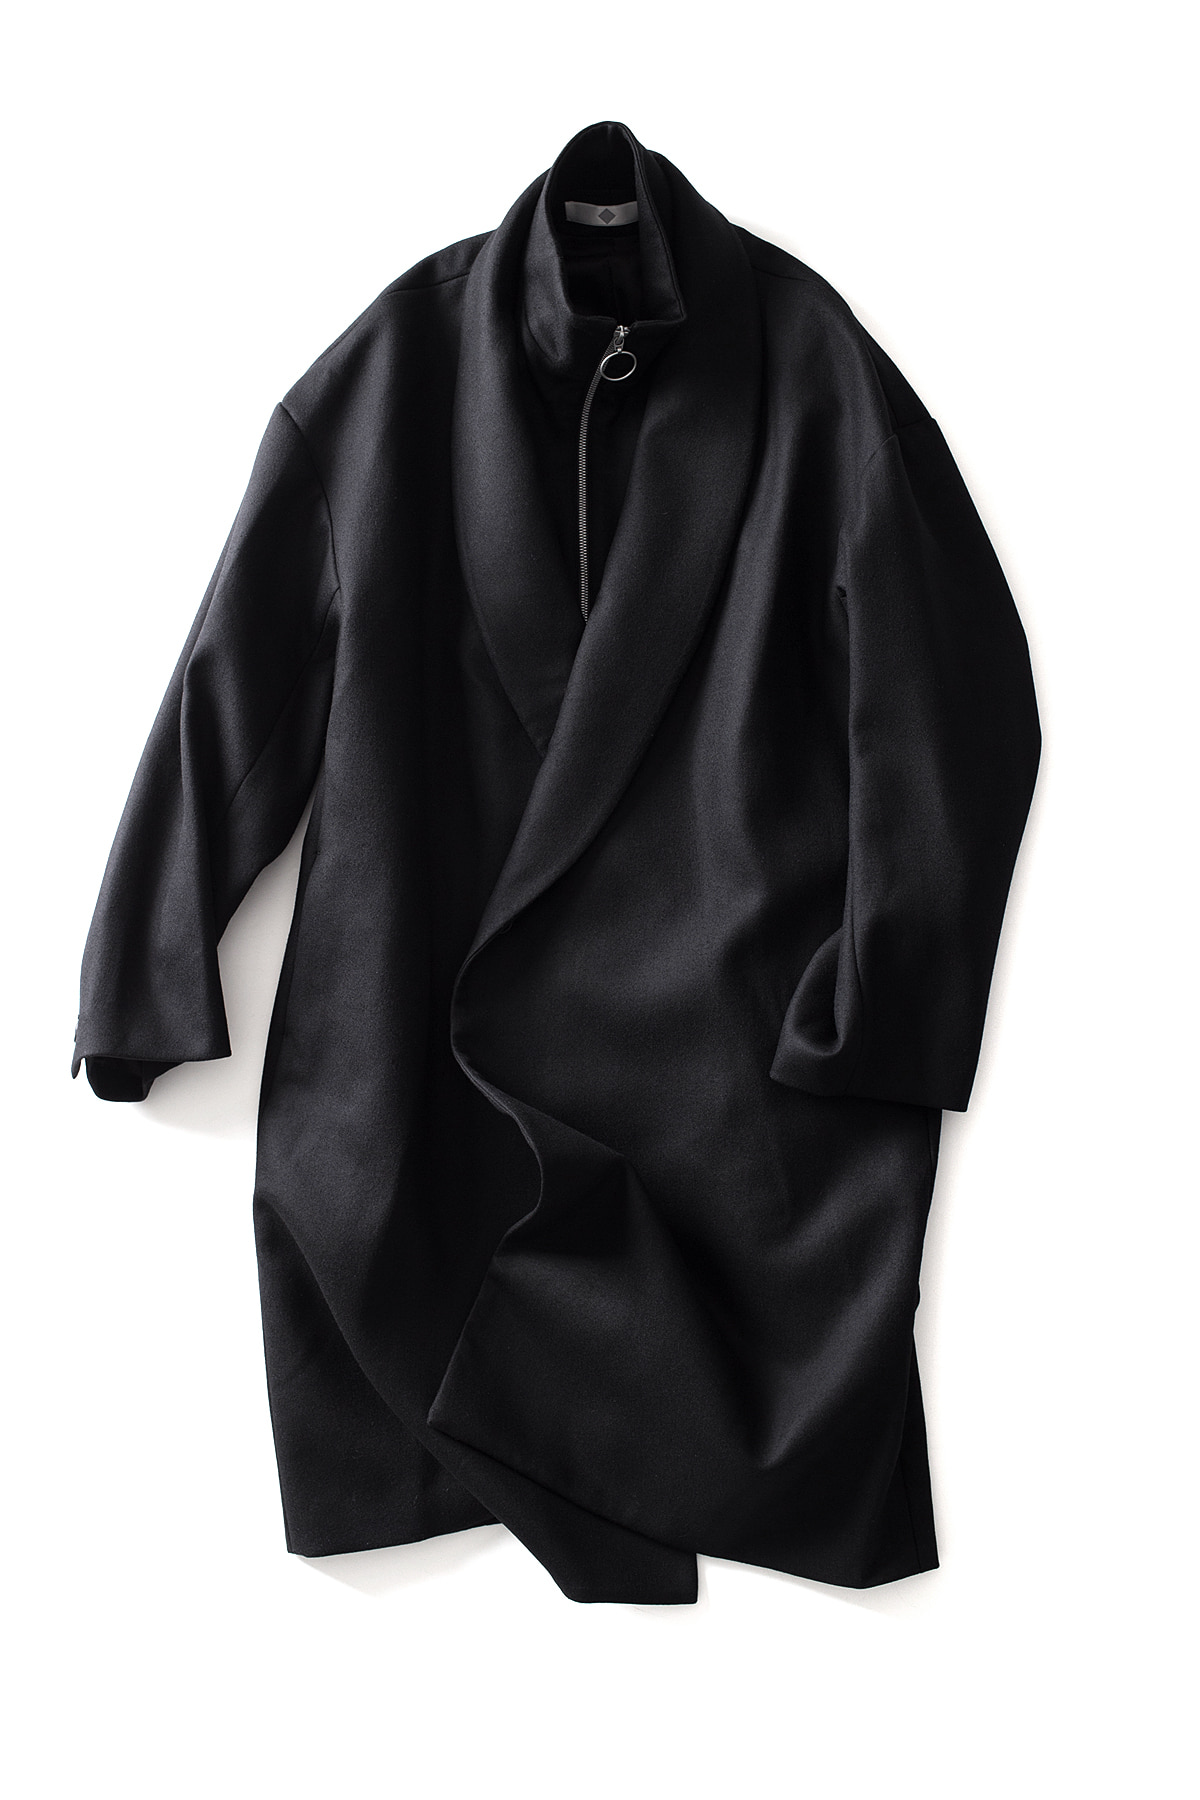 ETHOSENS : Shawl Collar Layered Coat (Black)